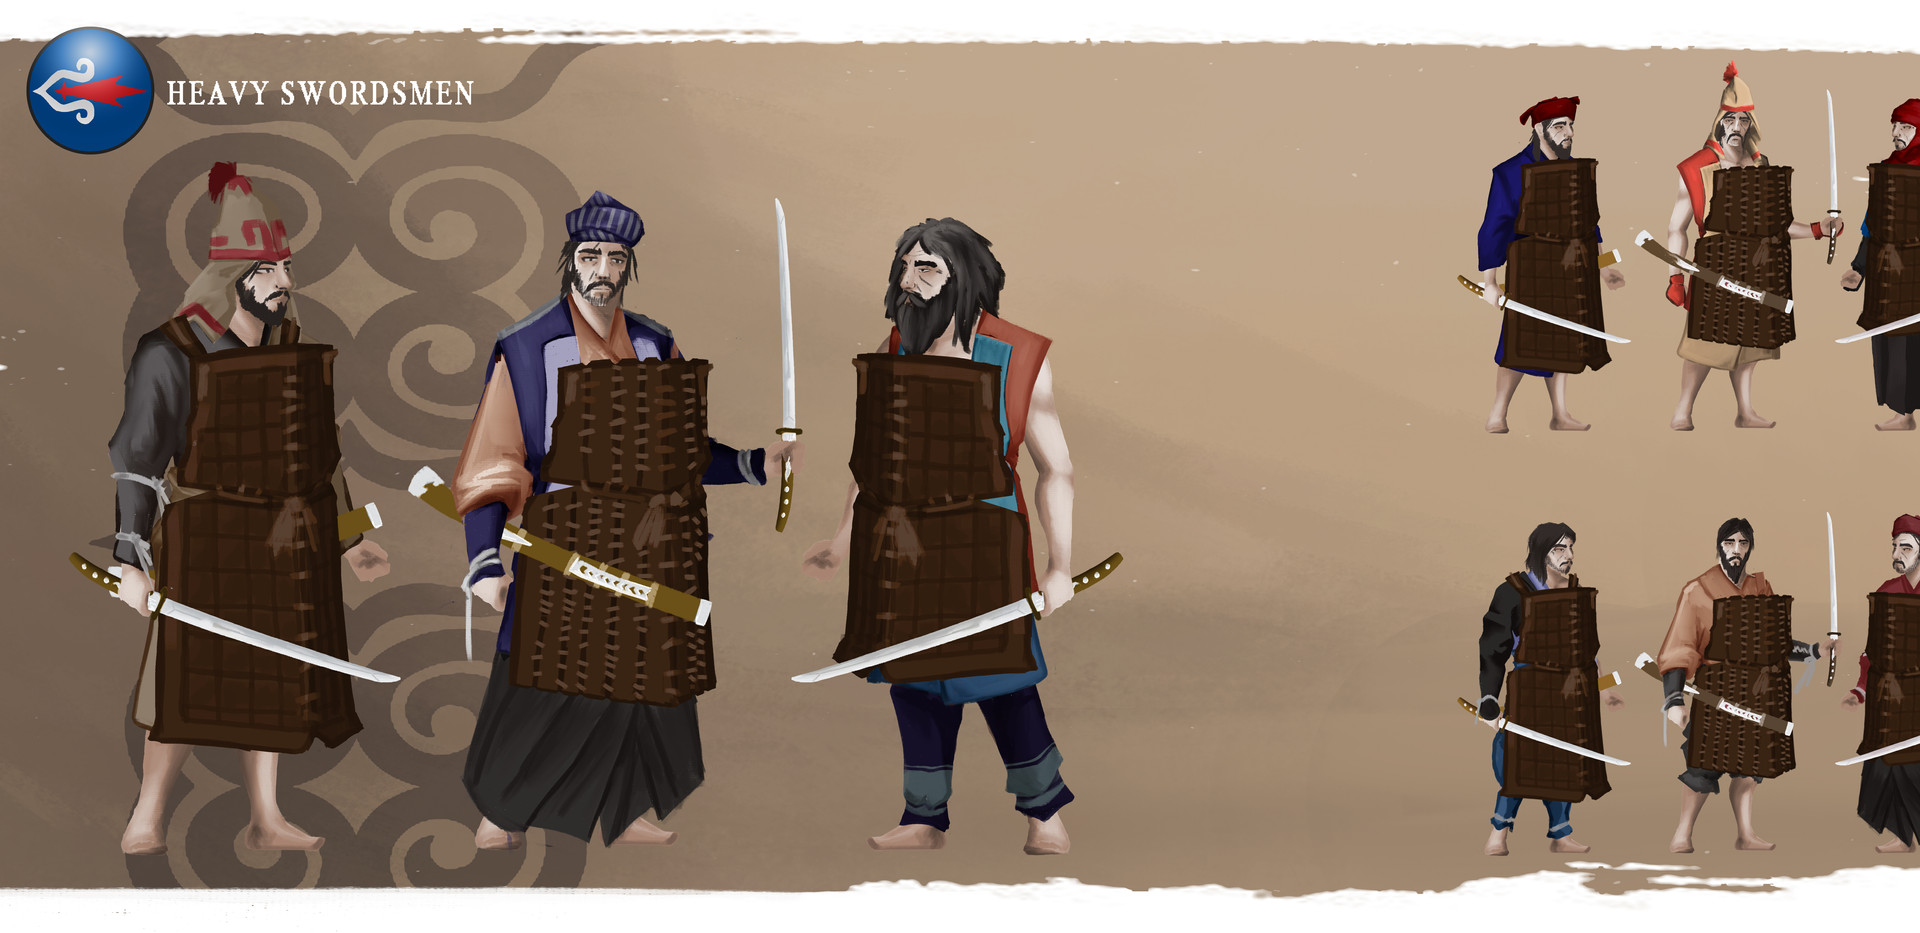 AINU Heavy Swordsmen